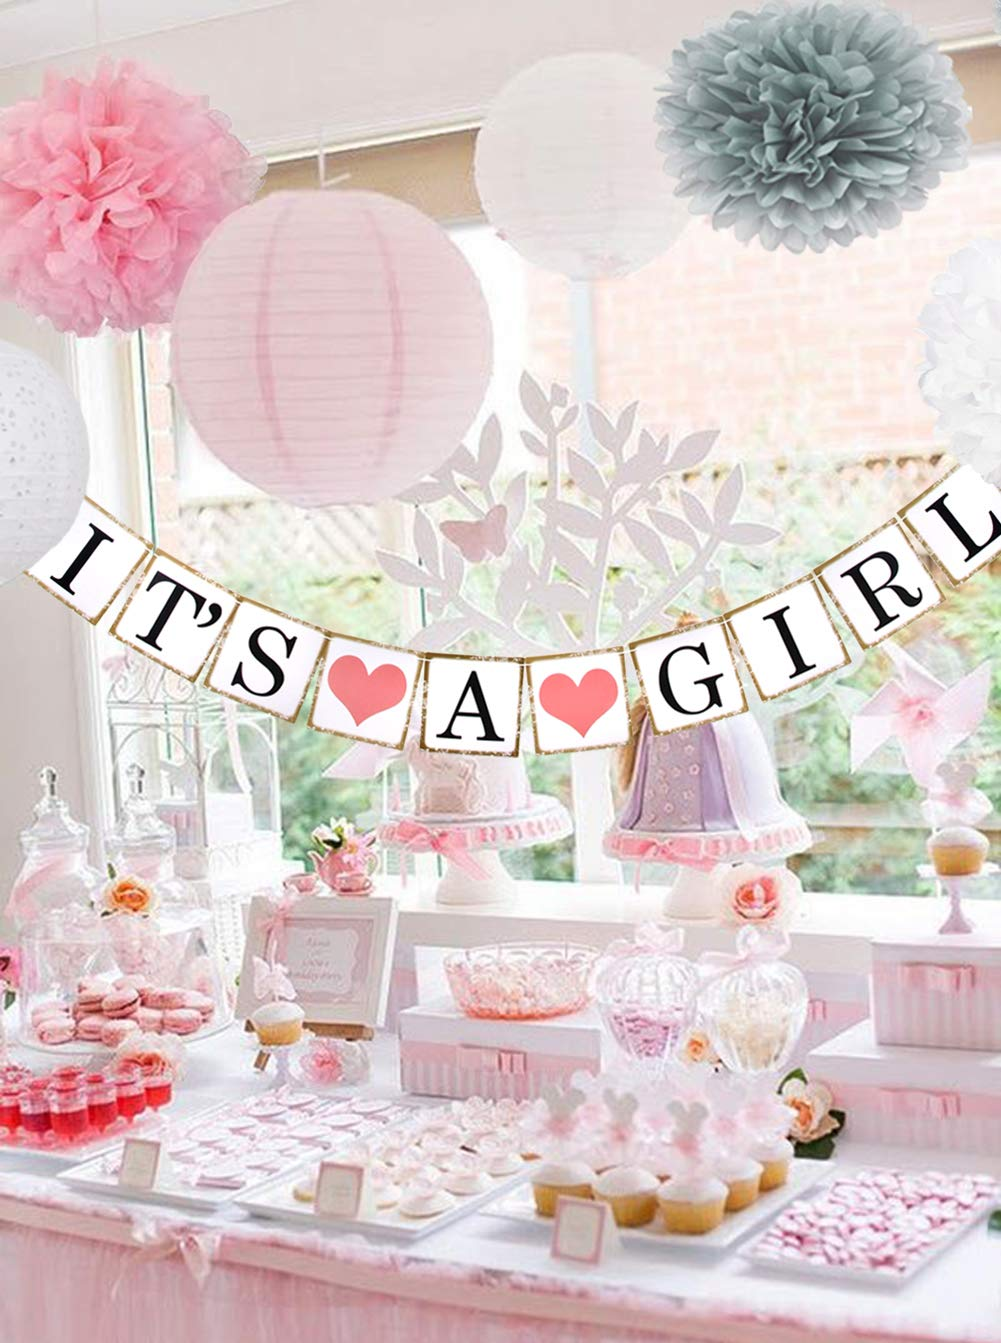 Beau & Miel Baby Shower Decorations for Girl, decoracion para Baby Shower  niña, babyshower Package, Decoration Party kit with Banner Decor, Pink  White Gray ...